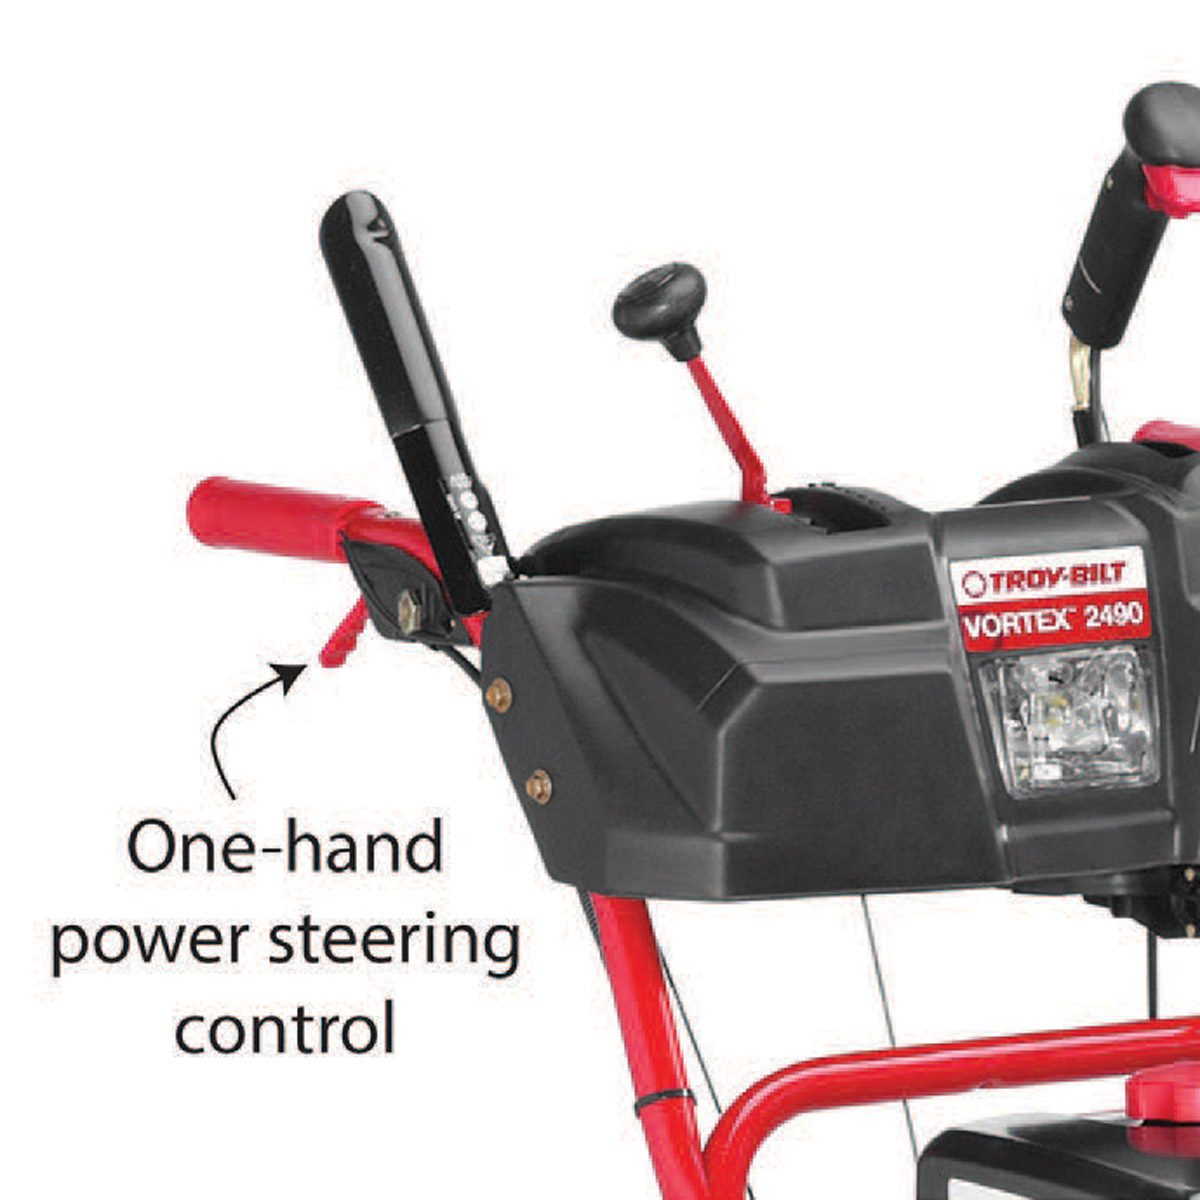 Power steering saves your back and makes the job easier